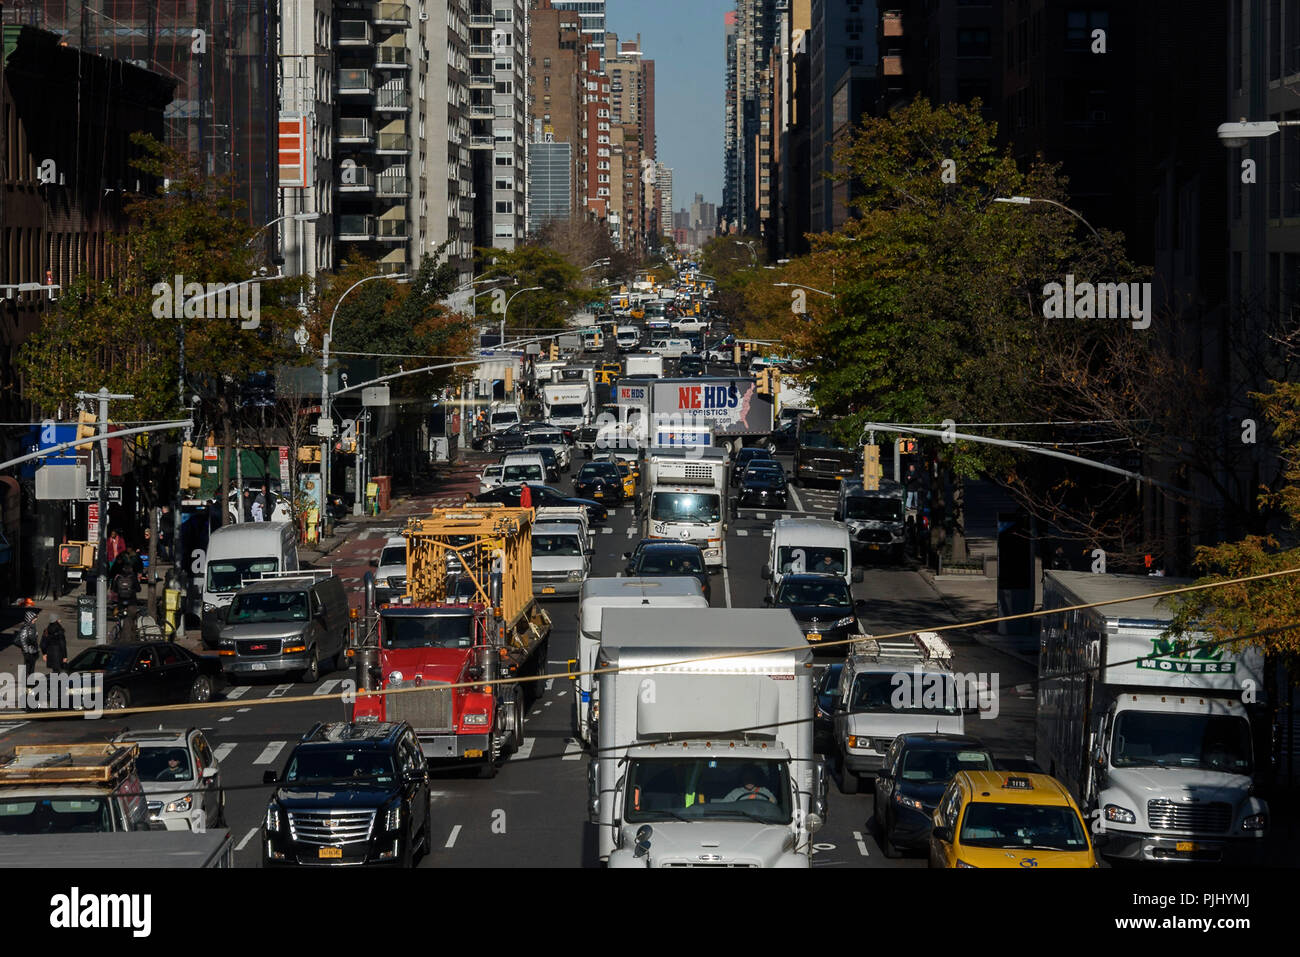 11-2017 New York, USA.  Traffic congestion on 1st Avenue near east 62nd street. Photo: © Simon Grosset - Stock Image